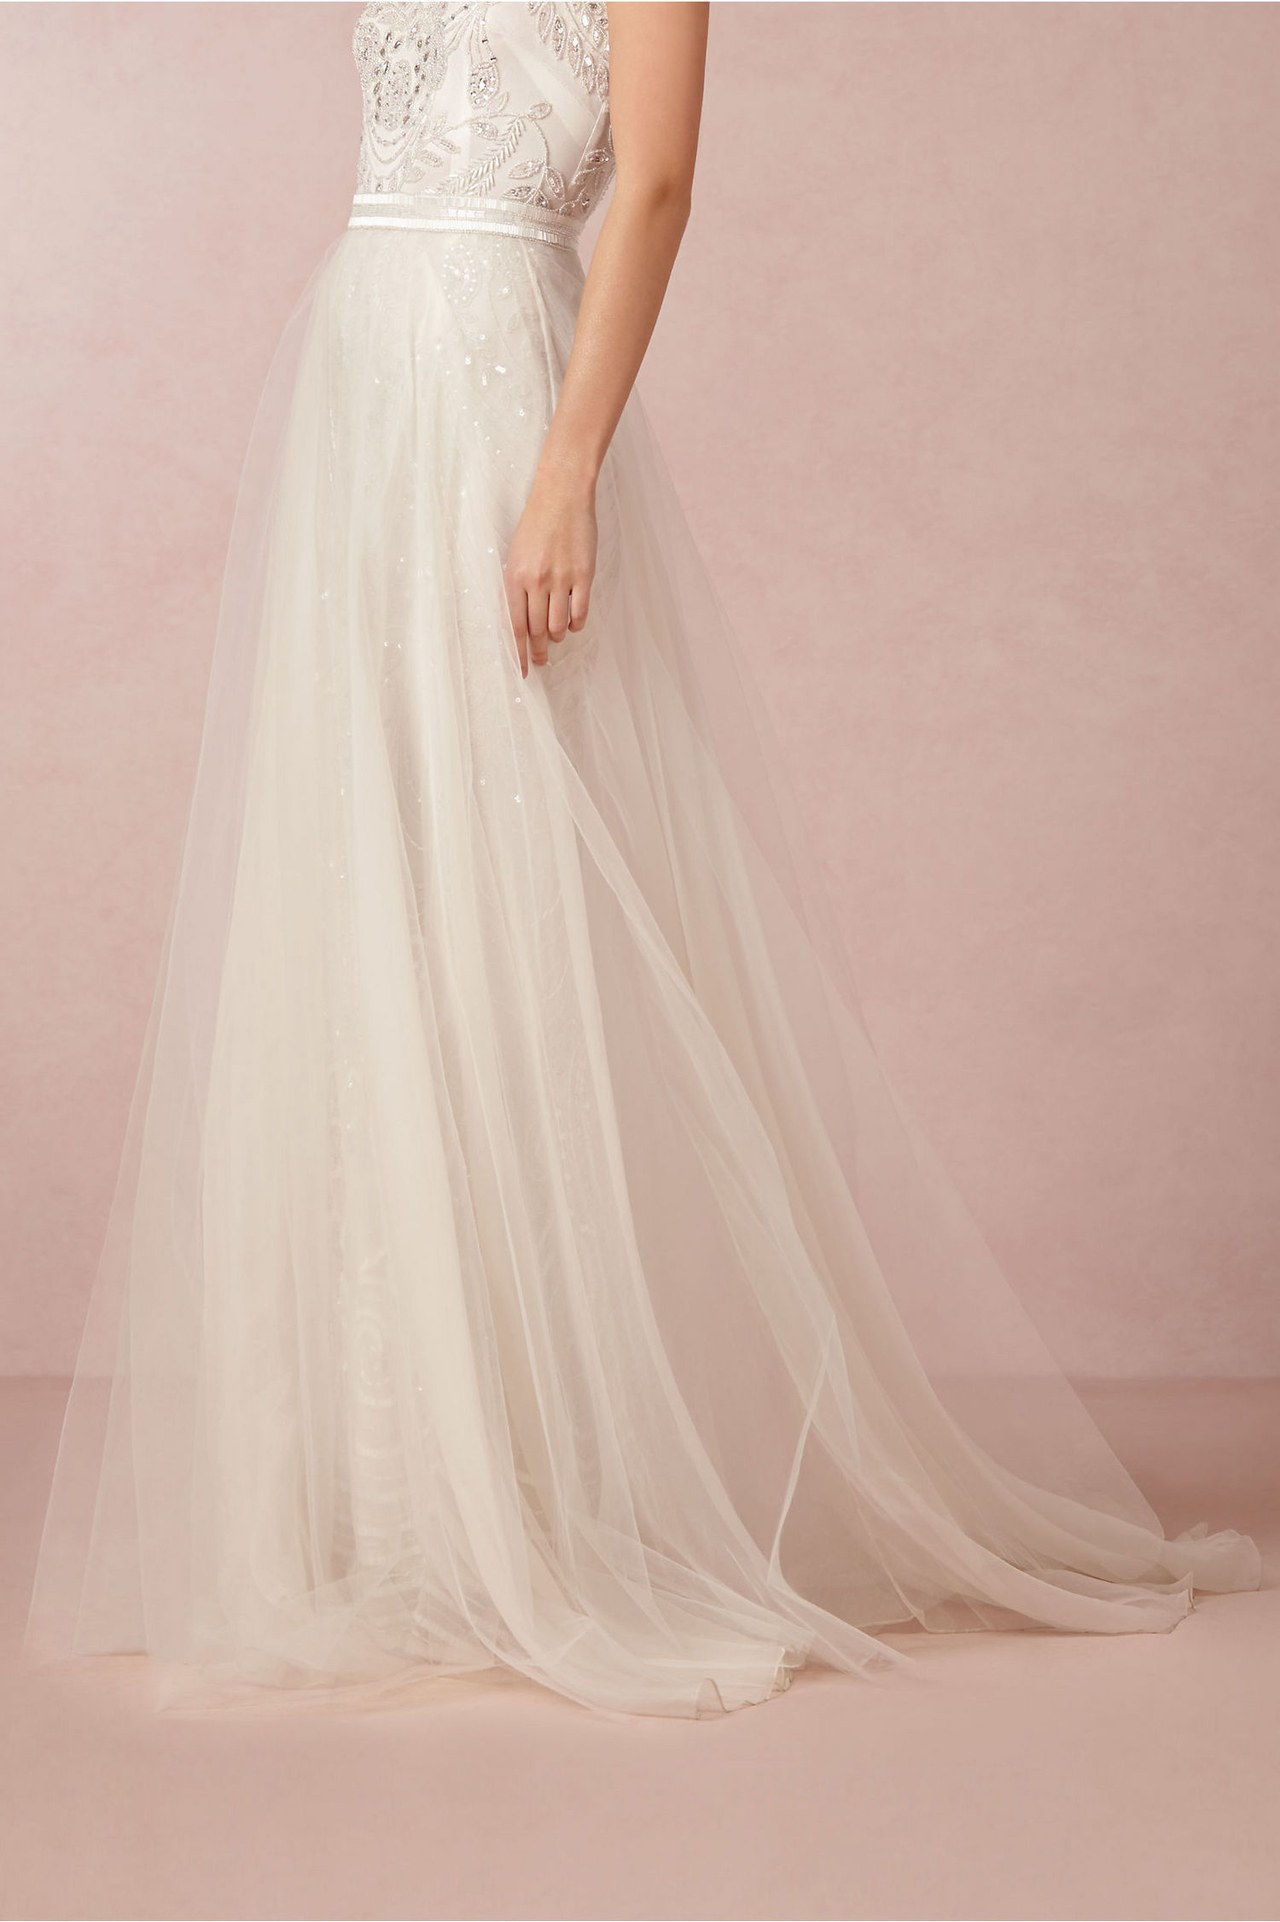 1c 2 in 1 wedding dresses wedding gowns mix and match wedding dresses bhldn 0430 courtesy